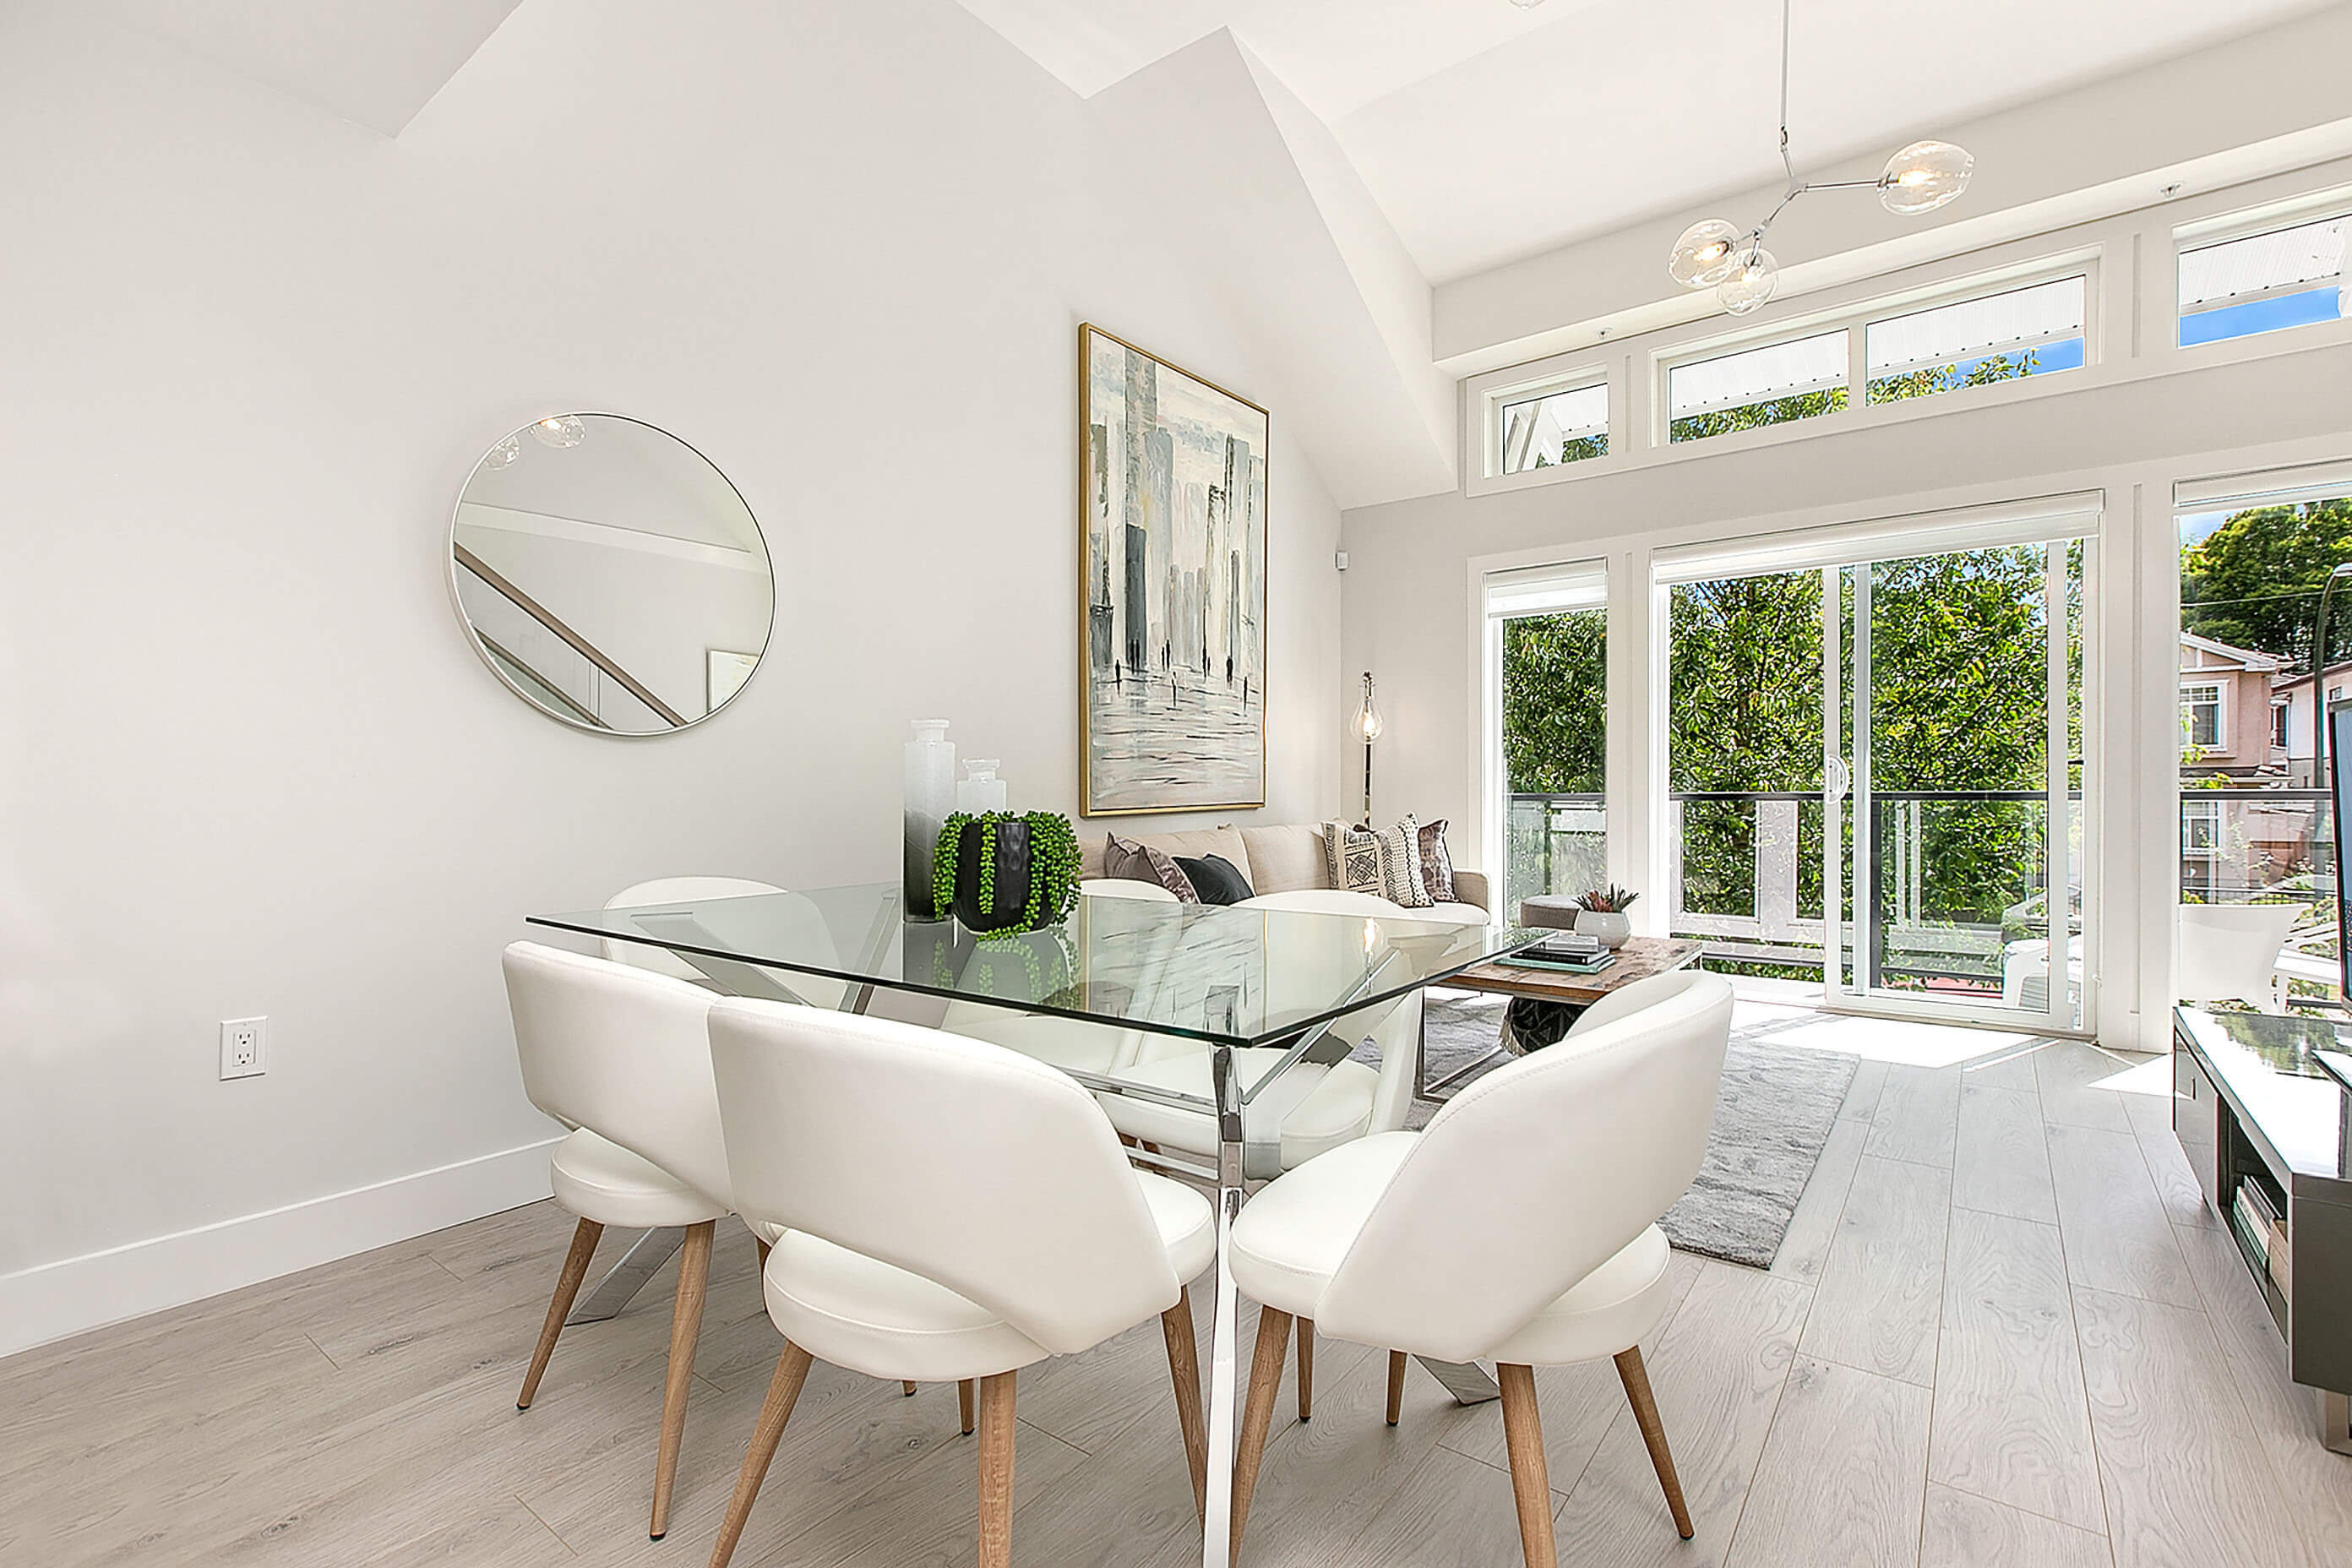 Dining Area - 2717 Horley St, Vancouver, BC V5R 4R7, Canada!